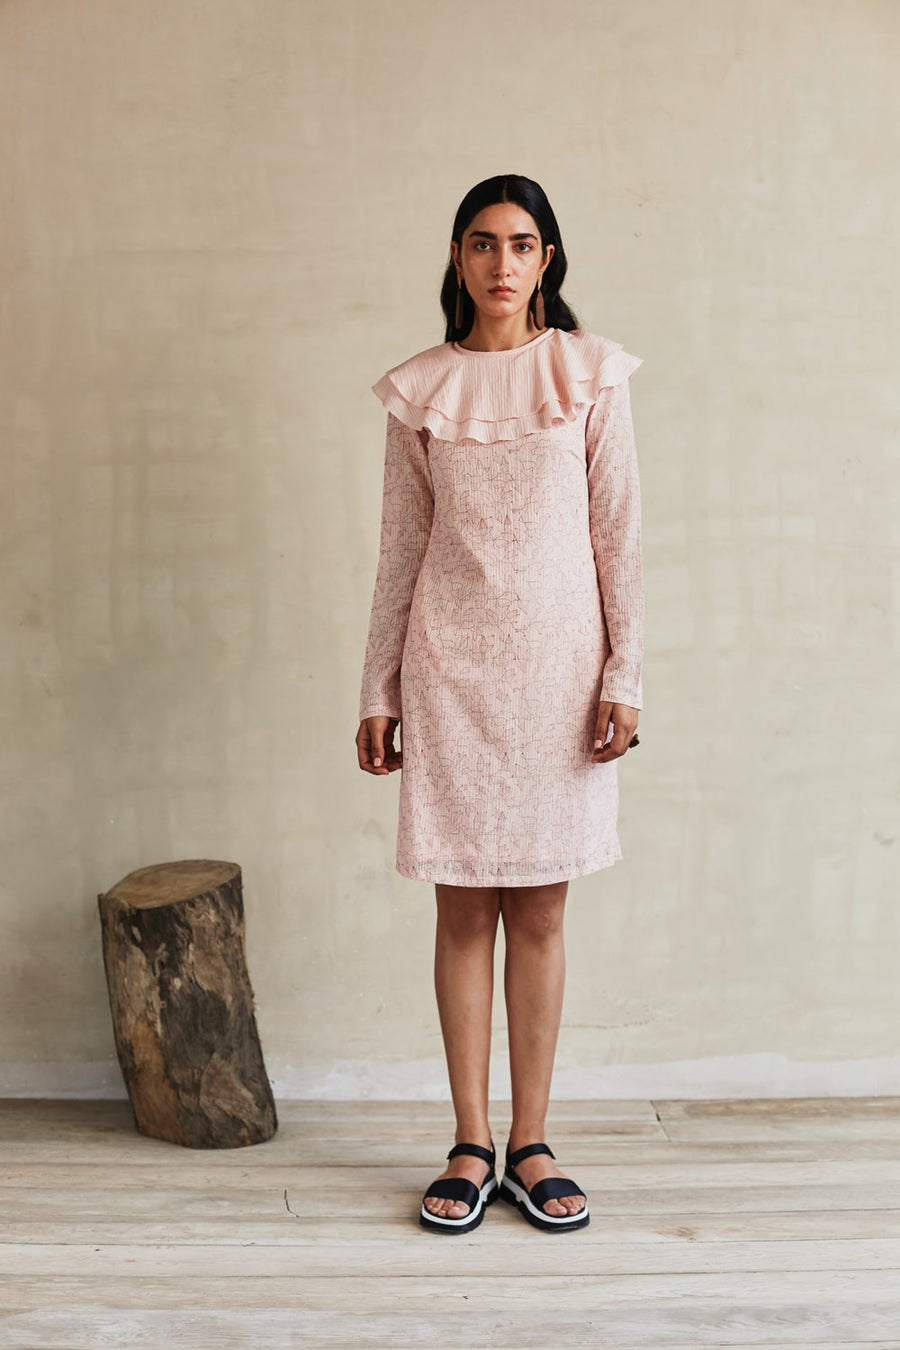 Ruffled Blush Short Dress - Ethical made fashion - onlyethikal